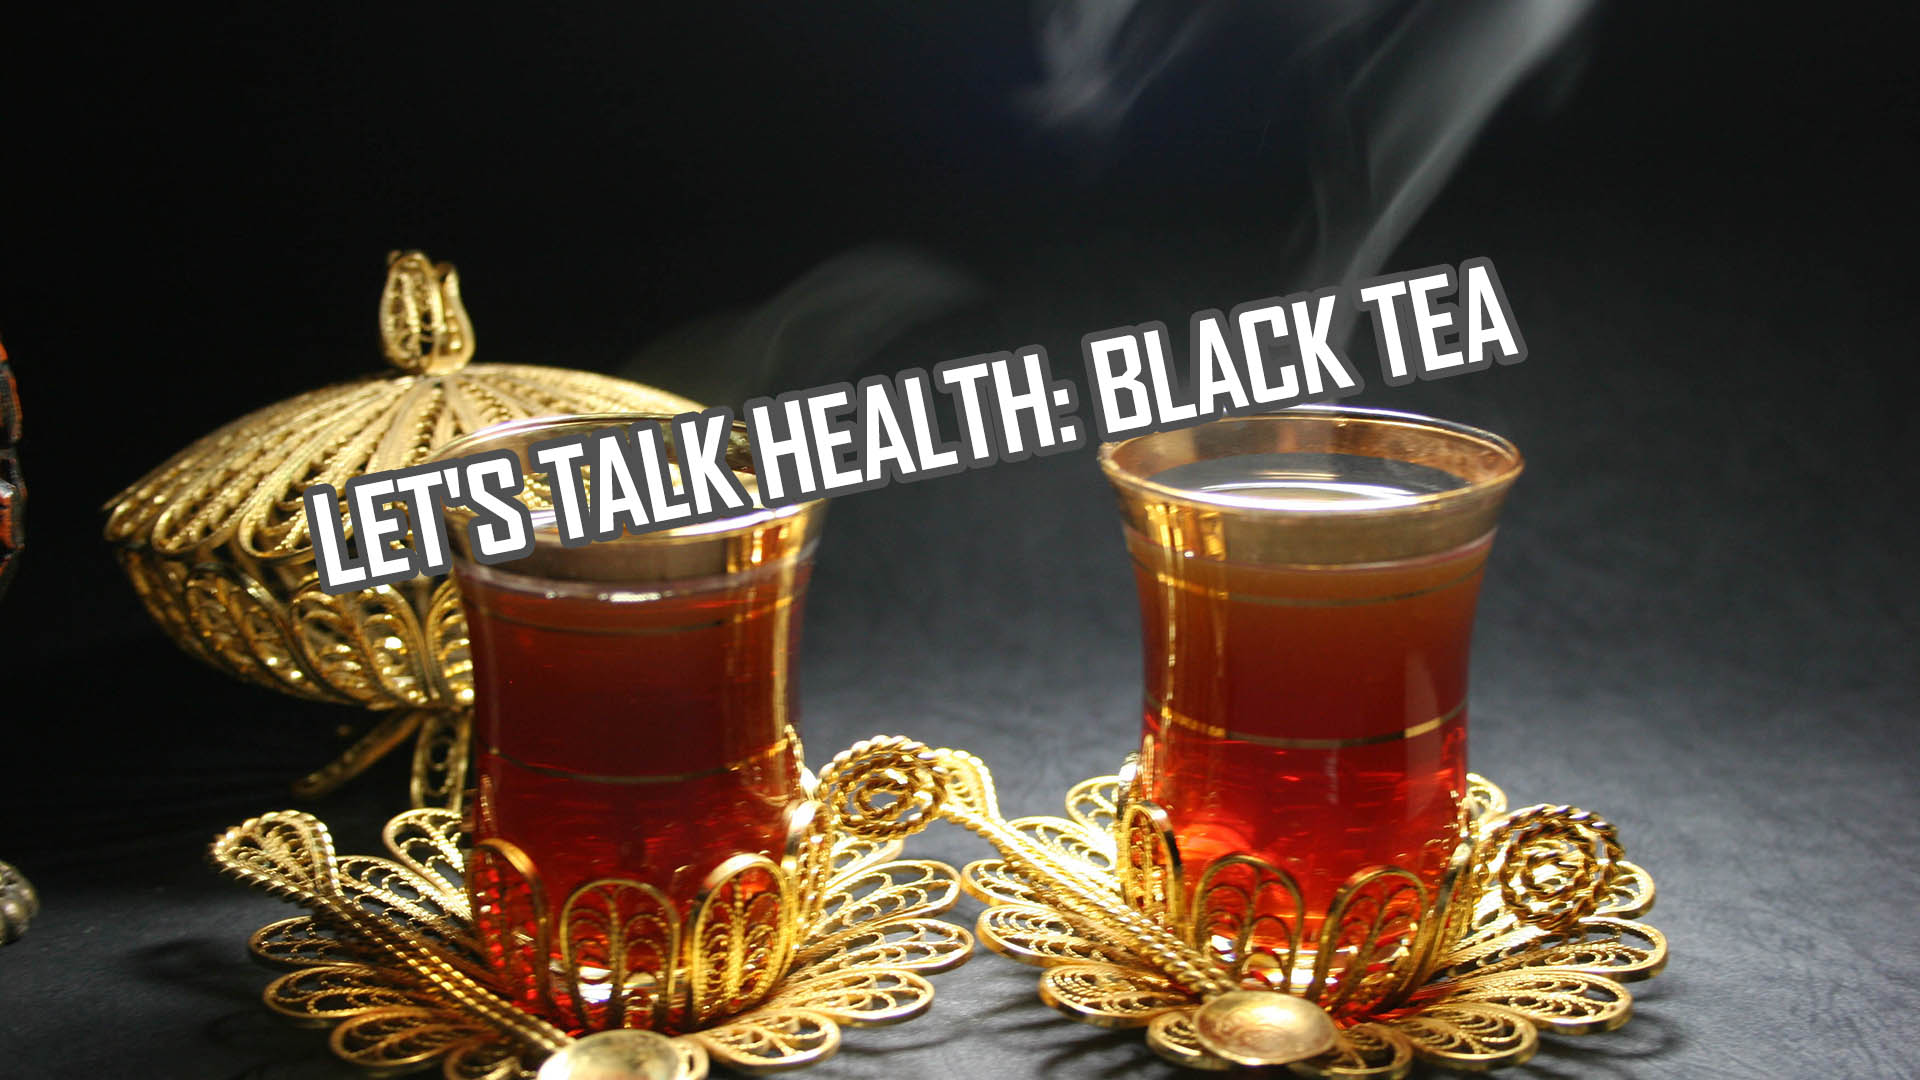 Black Tea Health Benefits